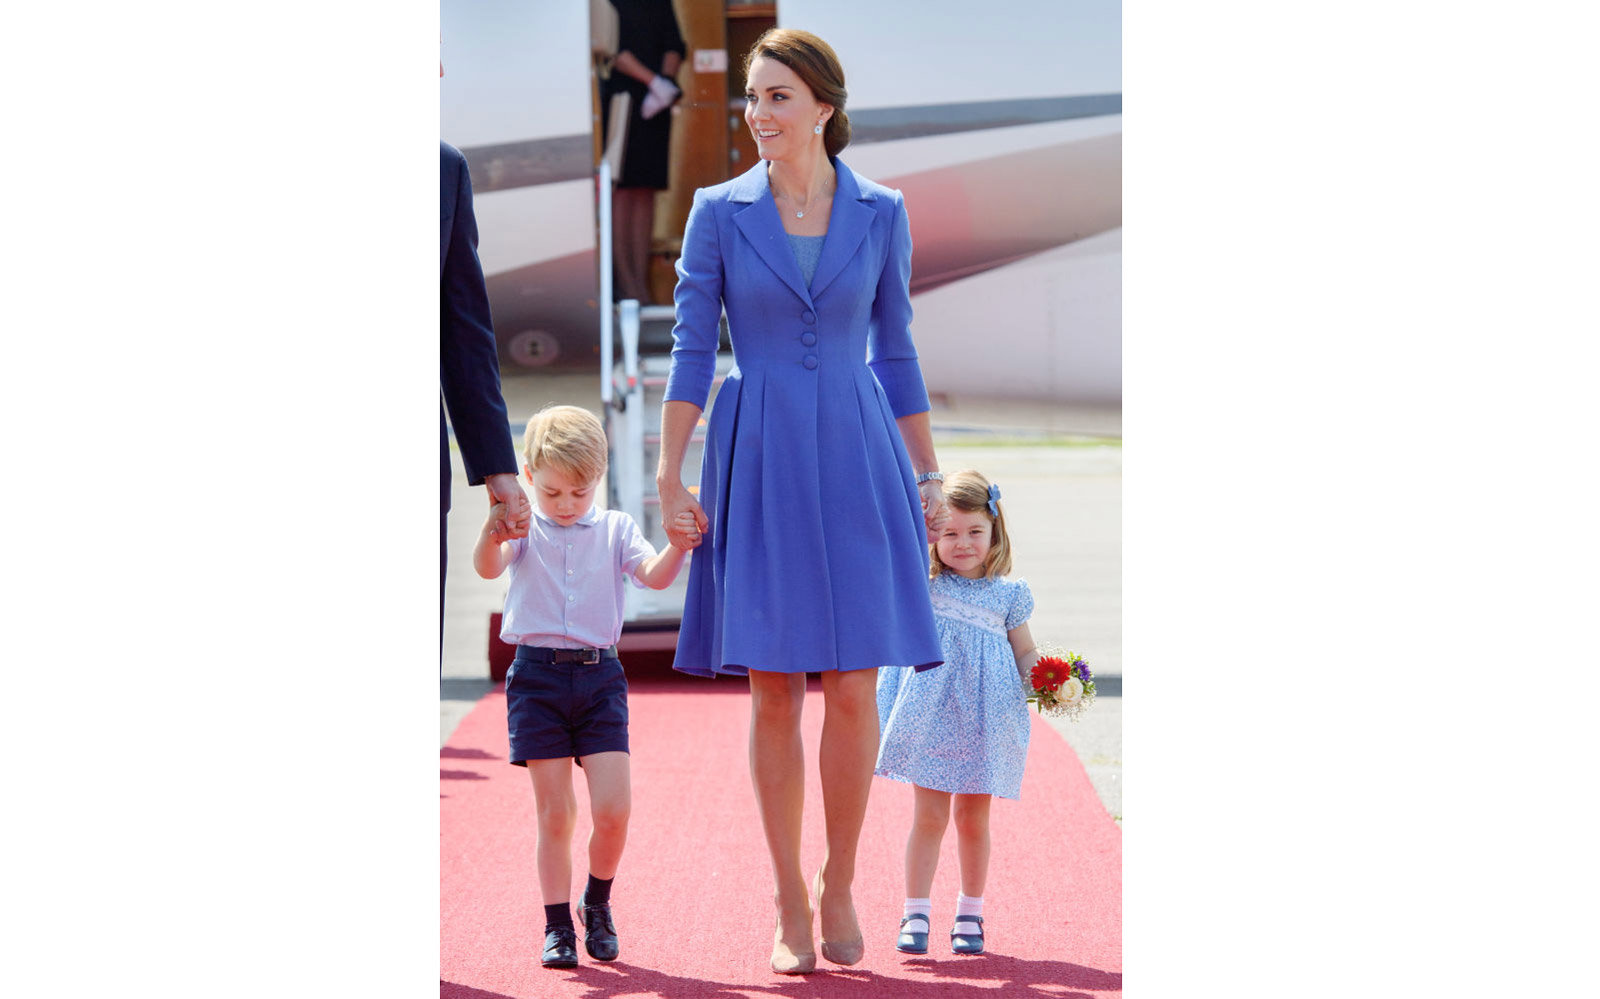 BERLIN, GERMANY - JULY 19:  (NO UK SALES FOR 28 DAYS FROM CREATE DATE) Catherine, Duchess of Cambridge, Prince George of Cambridge and Princess Charlotte of Cambridge arrive at Berlin military airport during an official visit to Poland and Germany on July